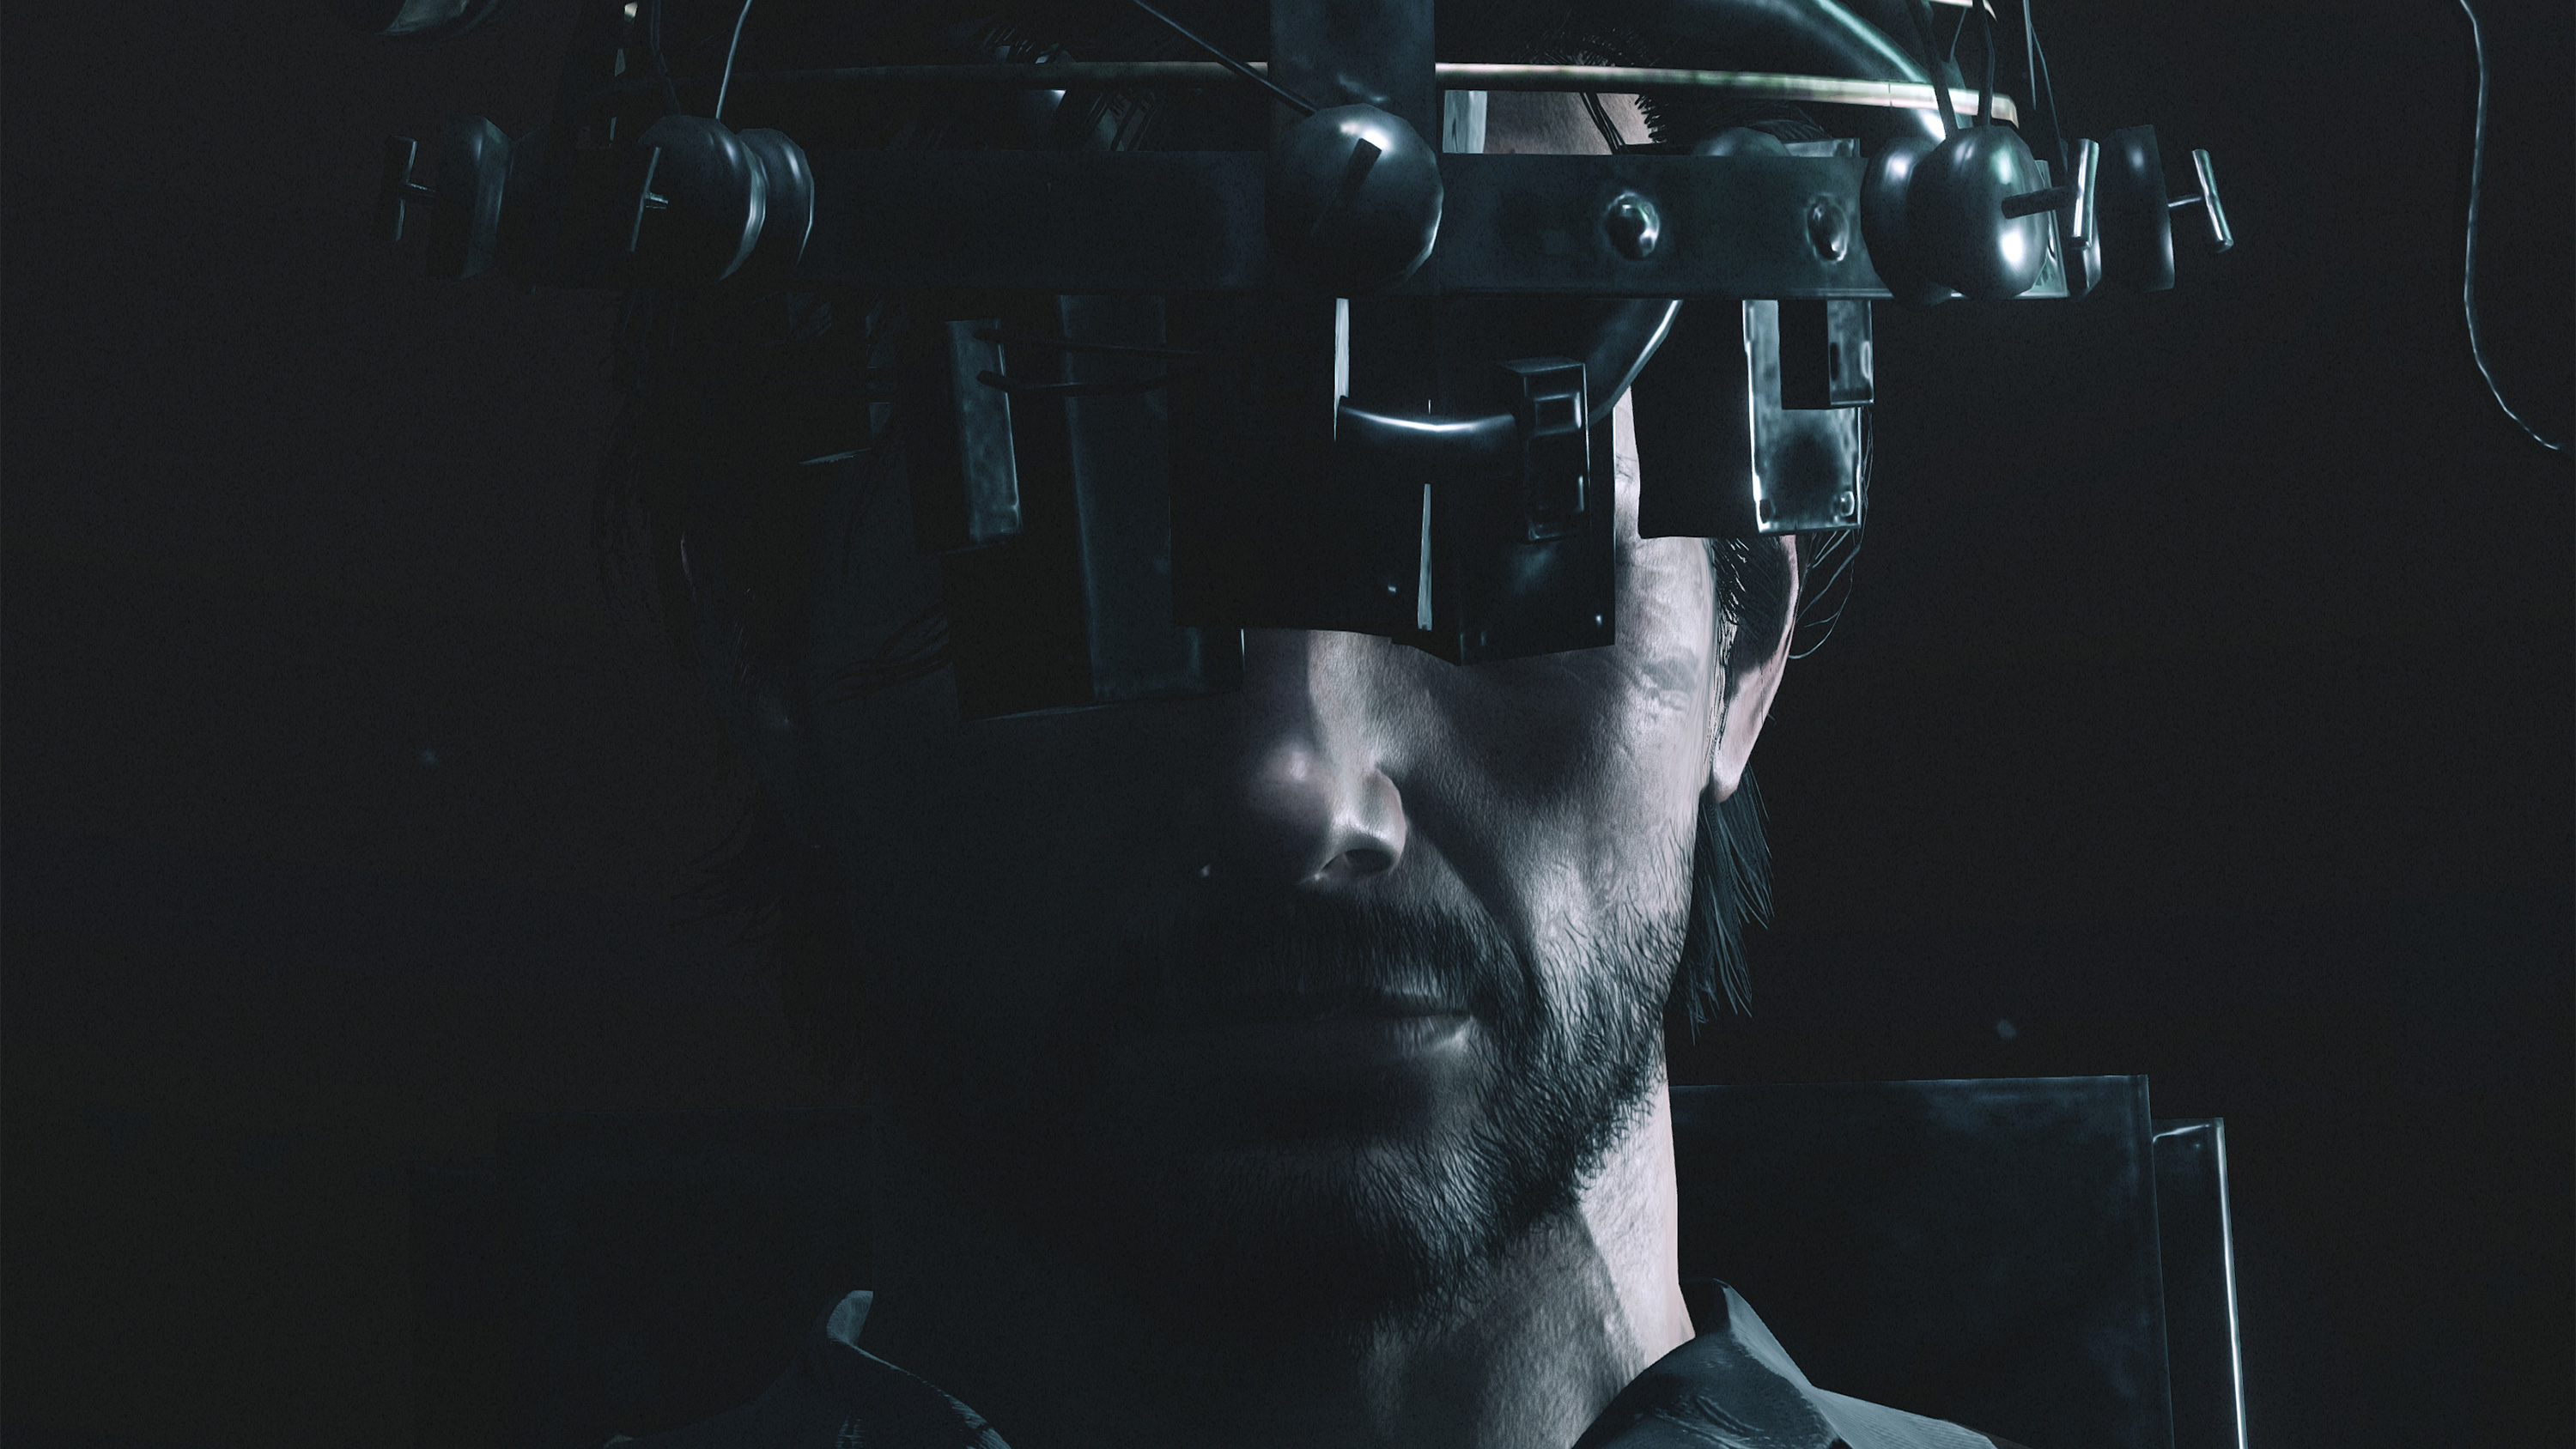 The Evil Within 2 Wallpapers Or Desktop Backgrounds: The Evil Within 2 Ps4, HD Games, 4k Wallpapers, Images